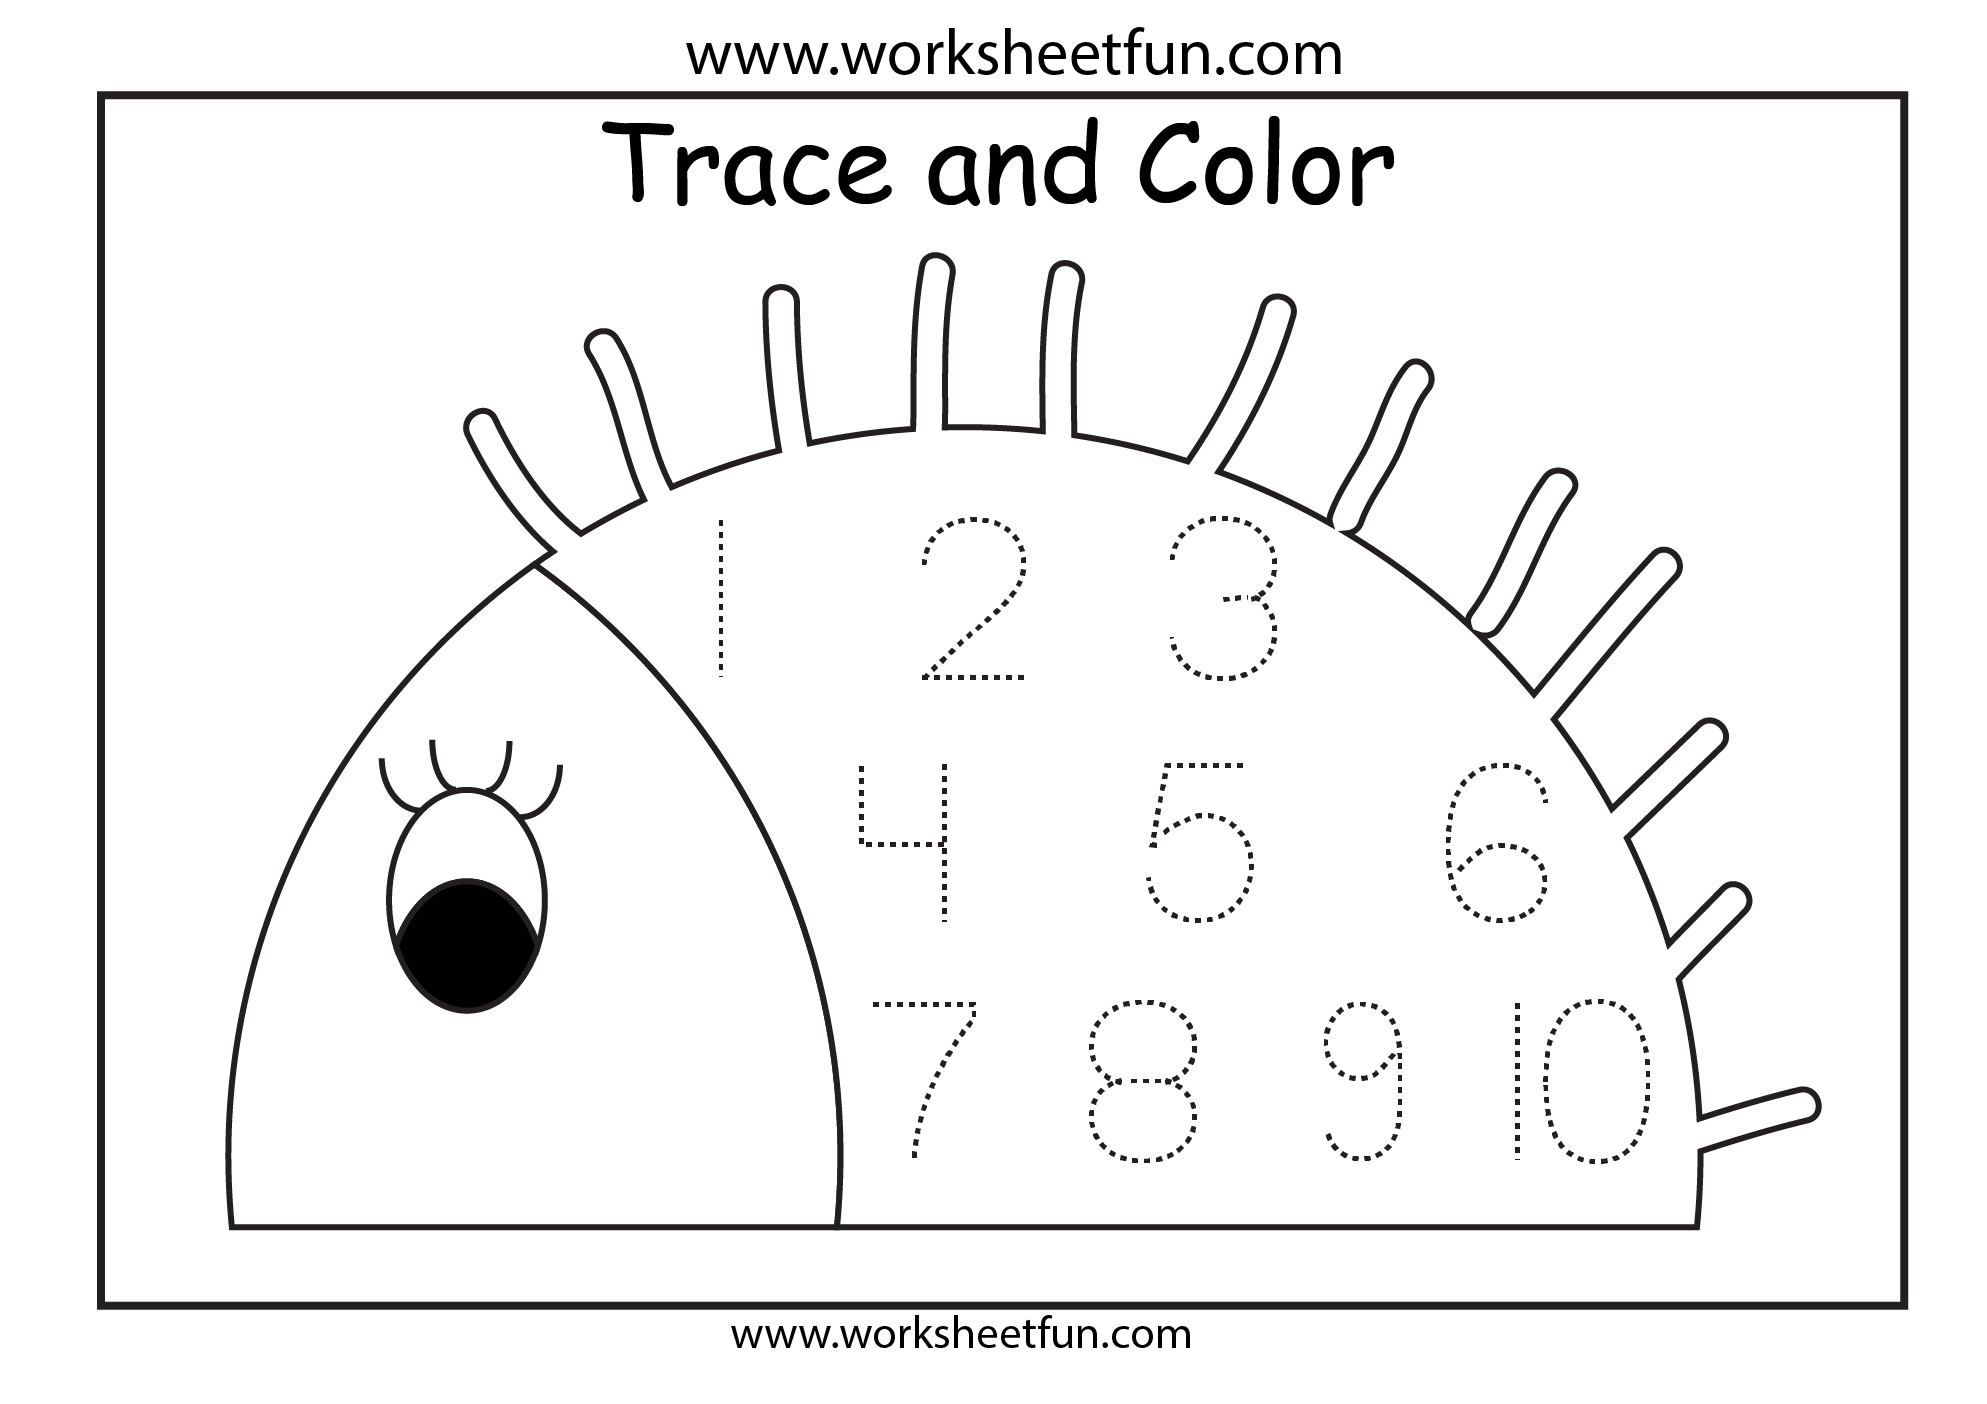 worksheet Counting To 10 Worksheets 10 images about paper and pencil on pinterest printable numbers math worksheets connect the dots